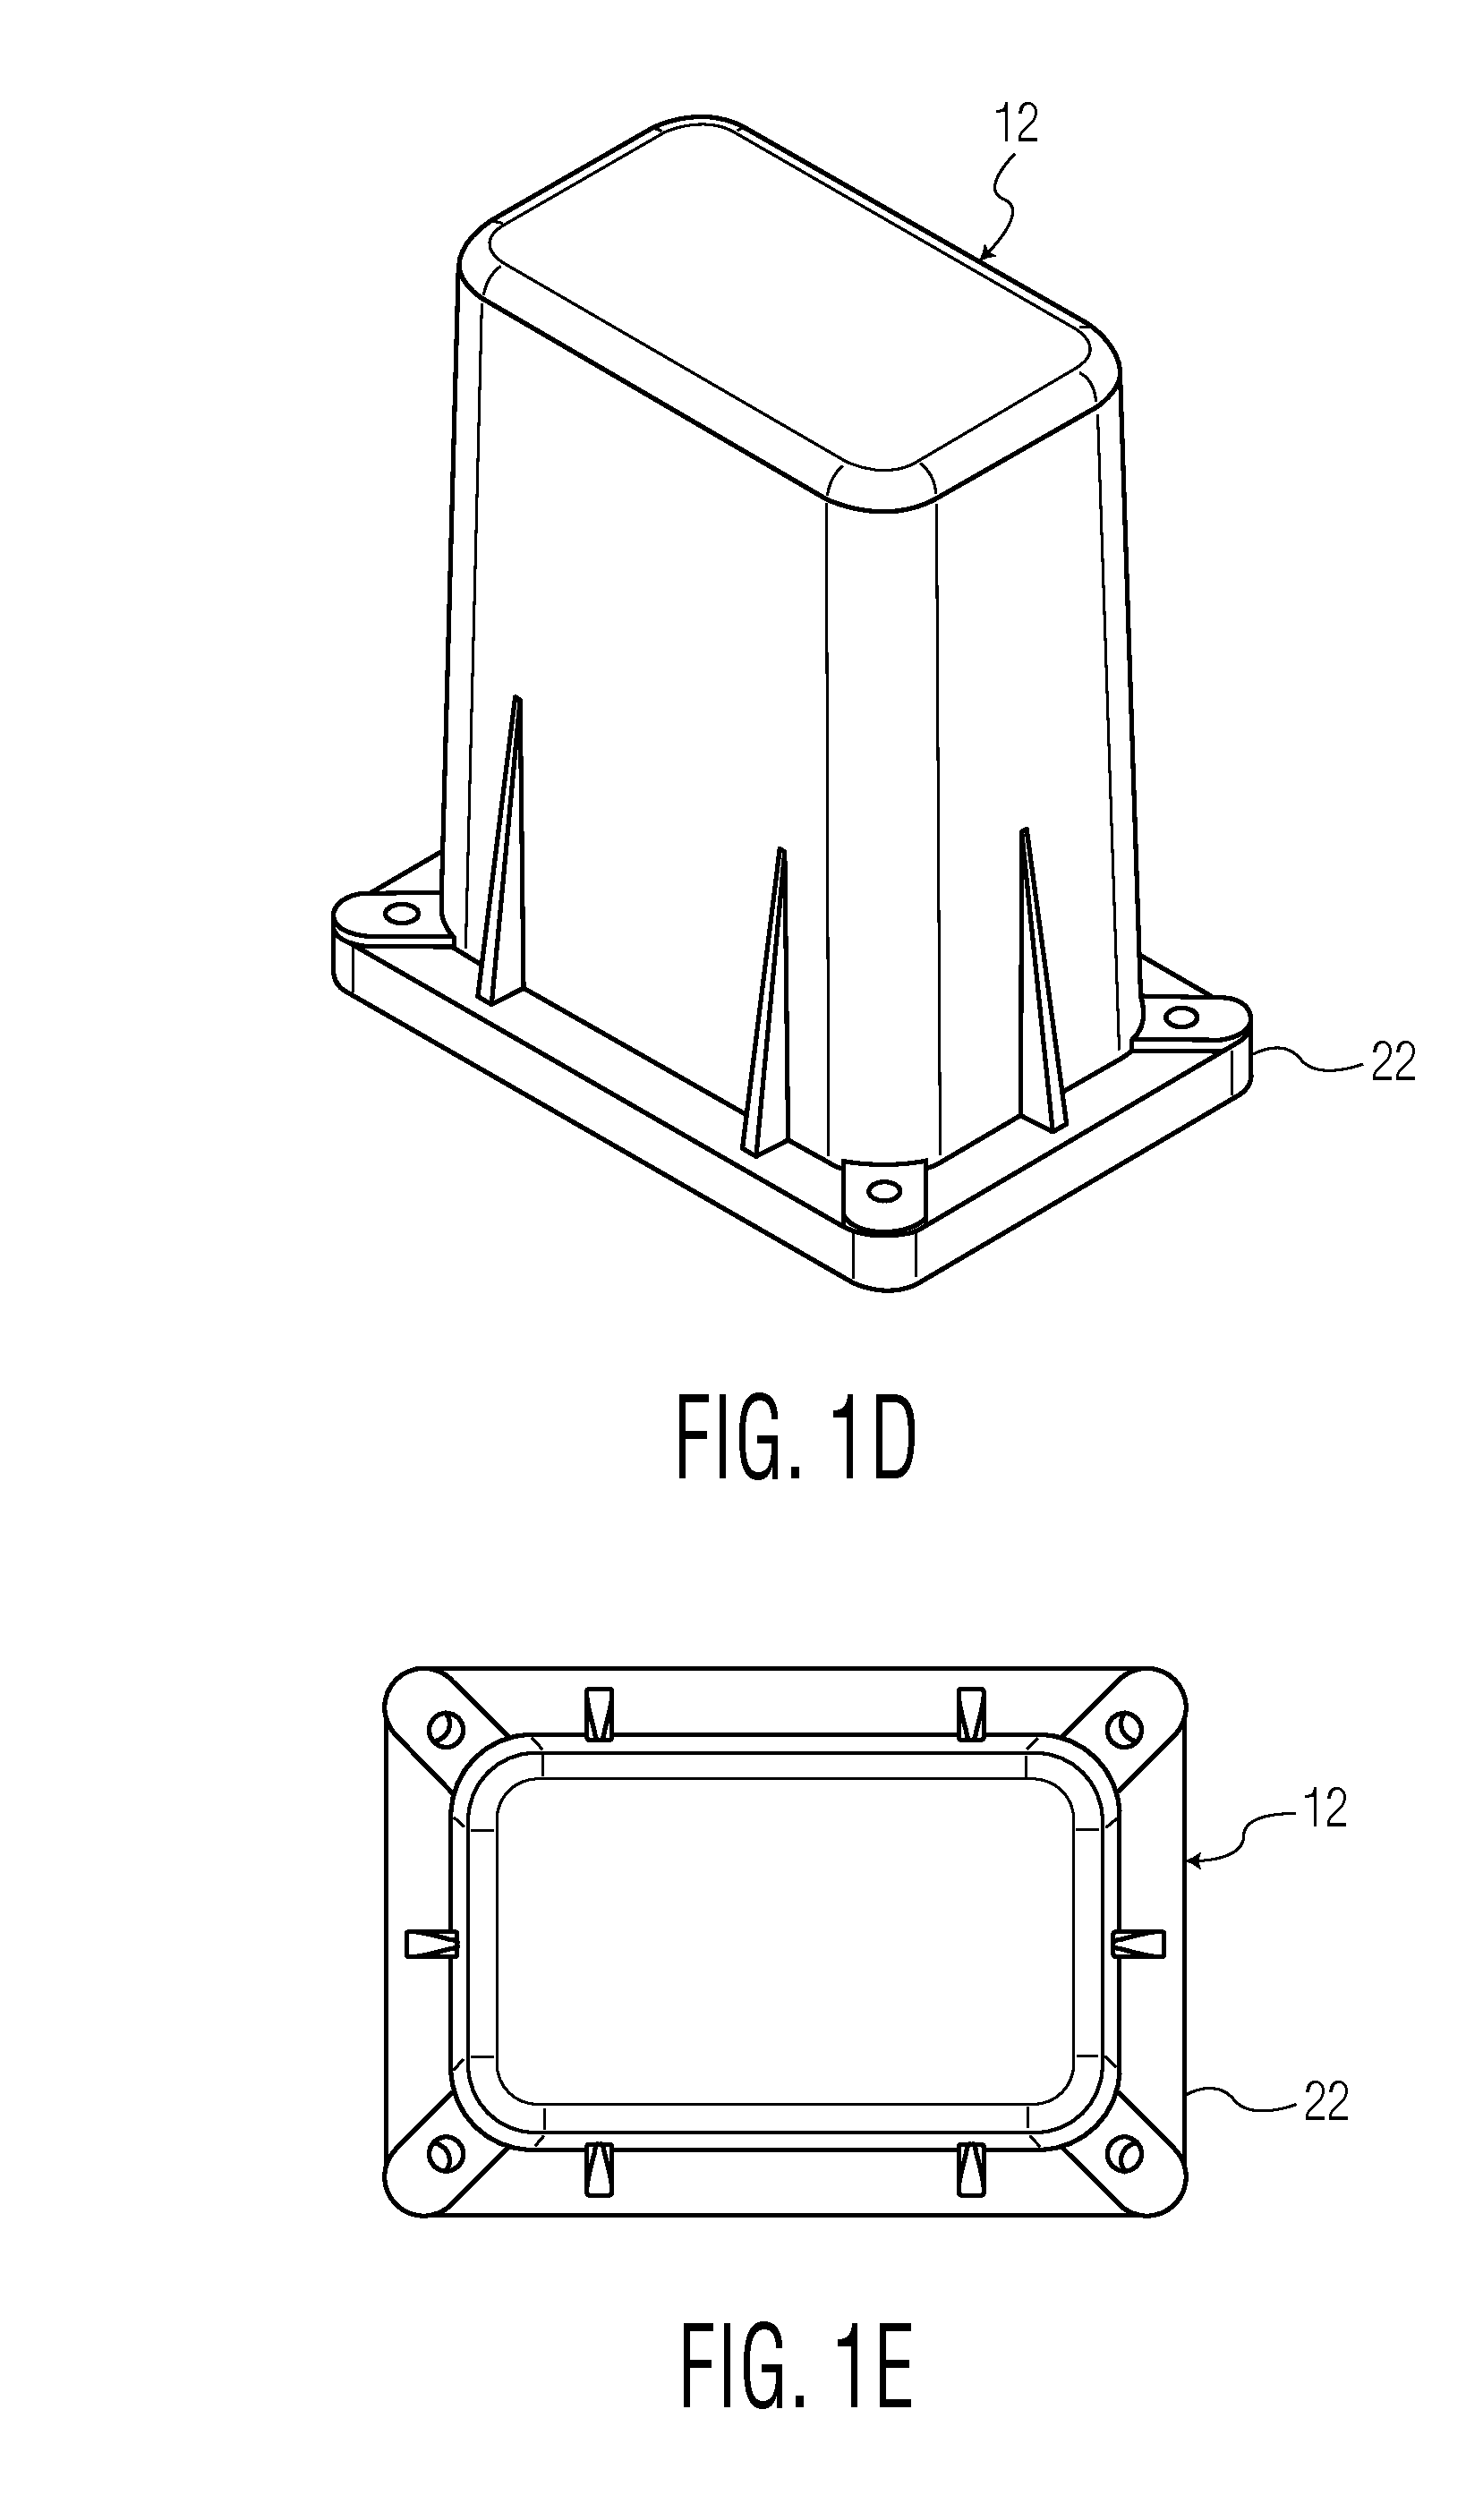 patent us20140090865 - electrical junction box with built-in isolation transformer